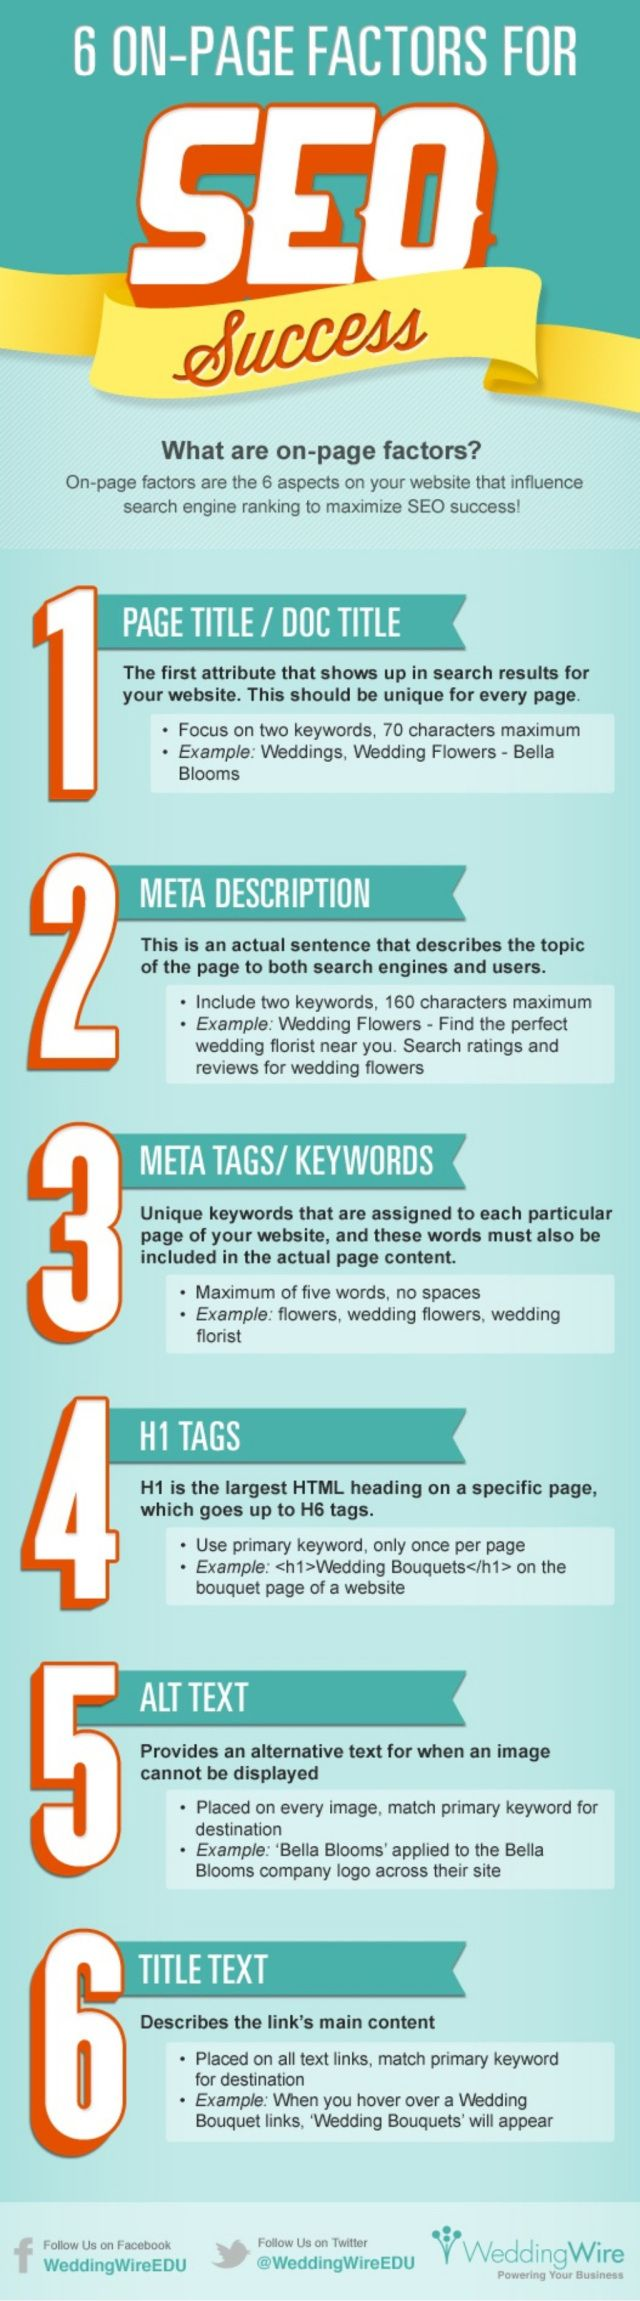 6 on-page factors for SEO success #infographic #seo